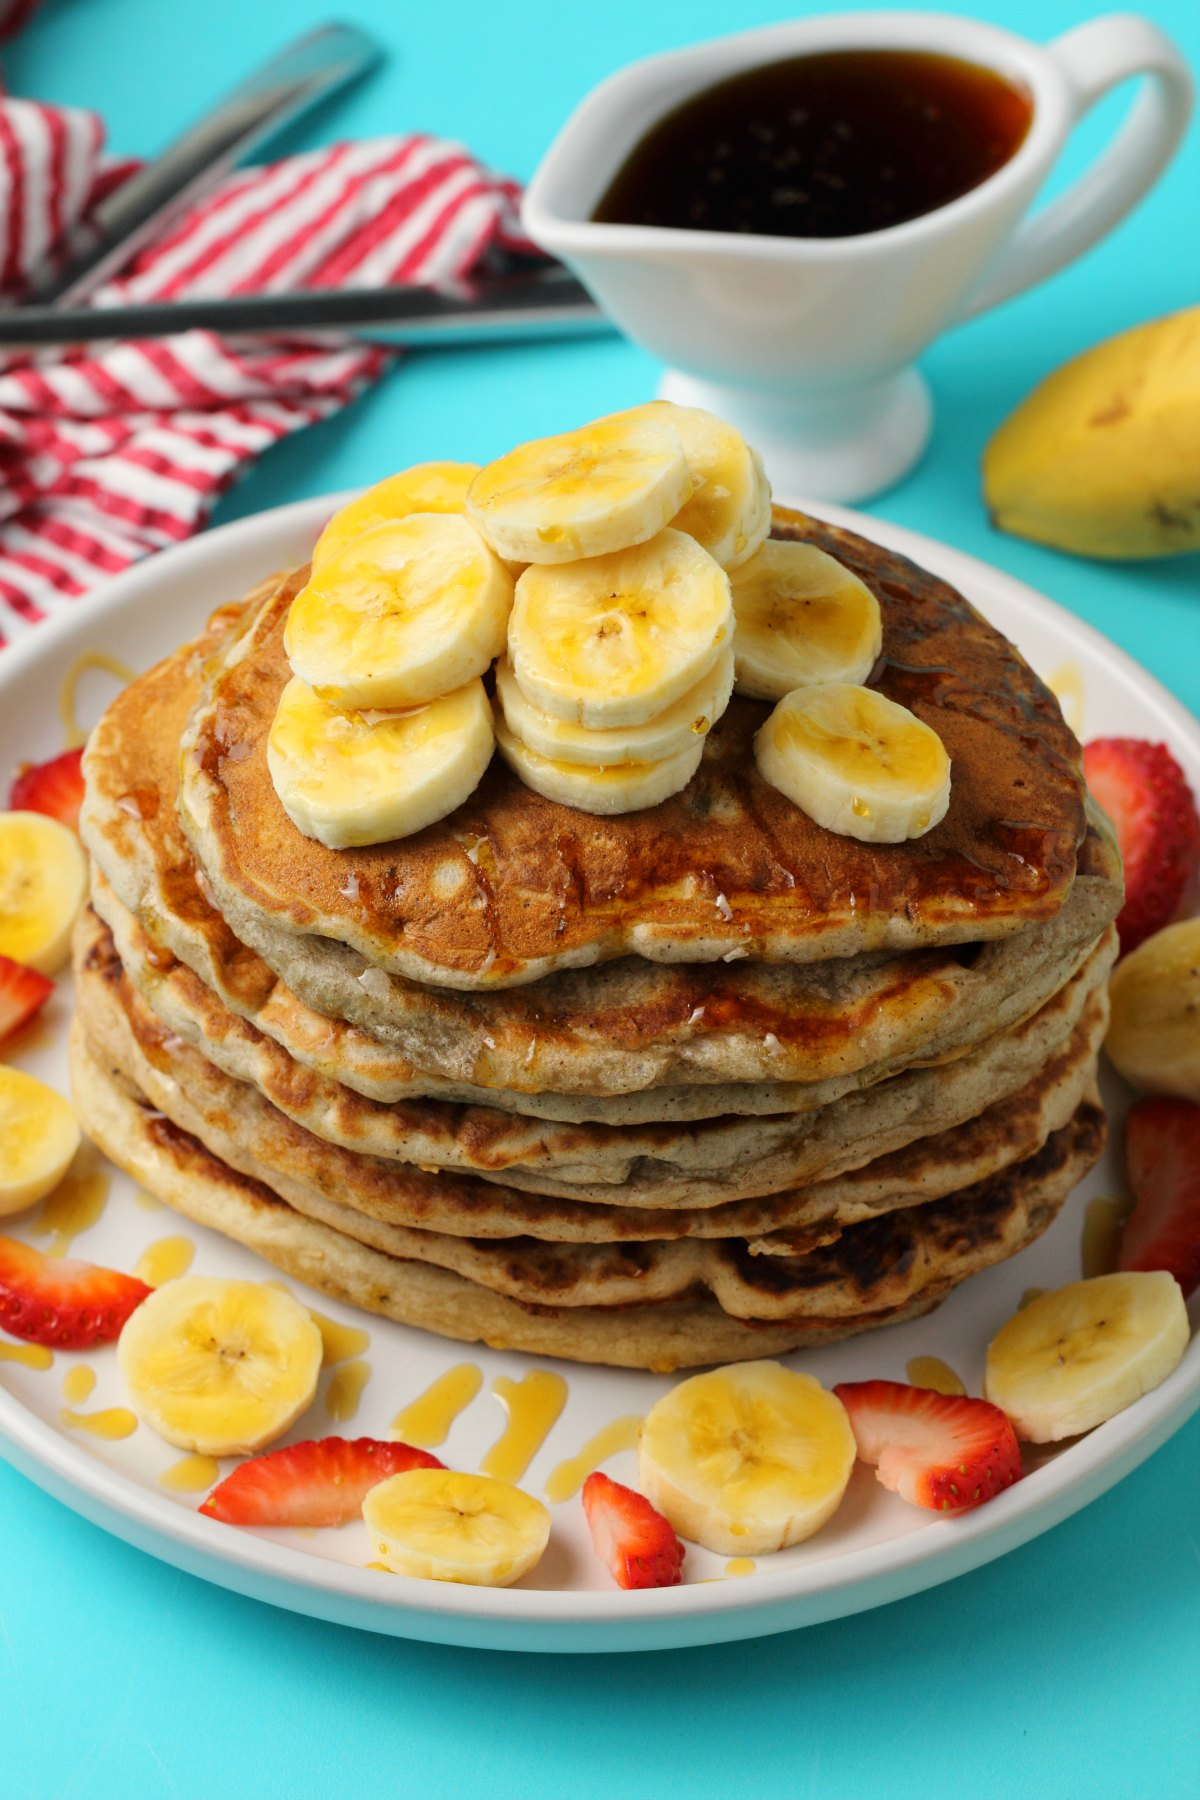 A stack of vegan banana pancakes topped with sliced banana on a white plate.